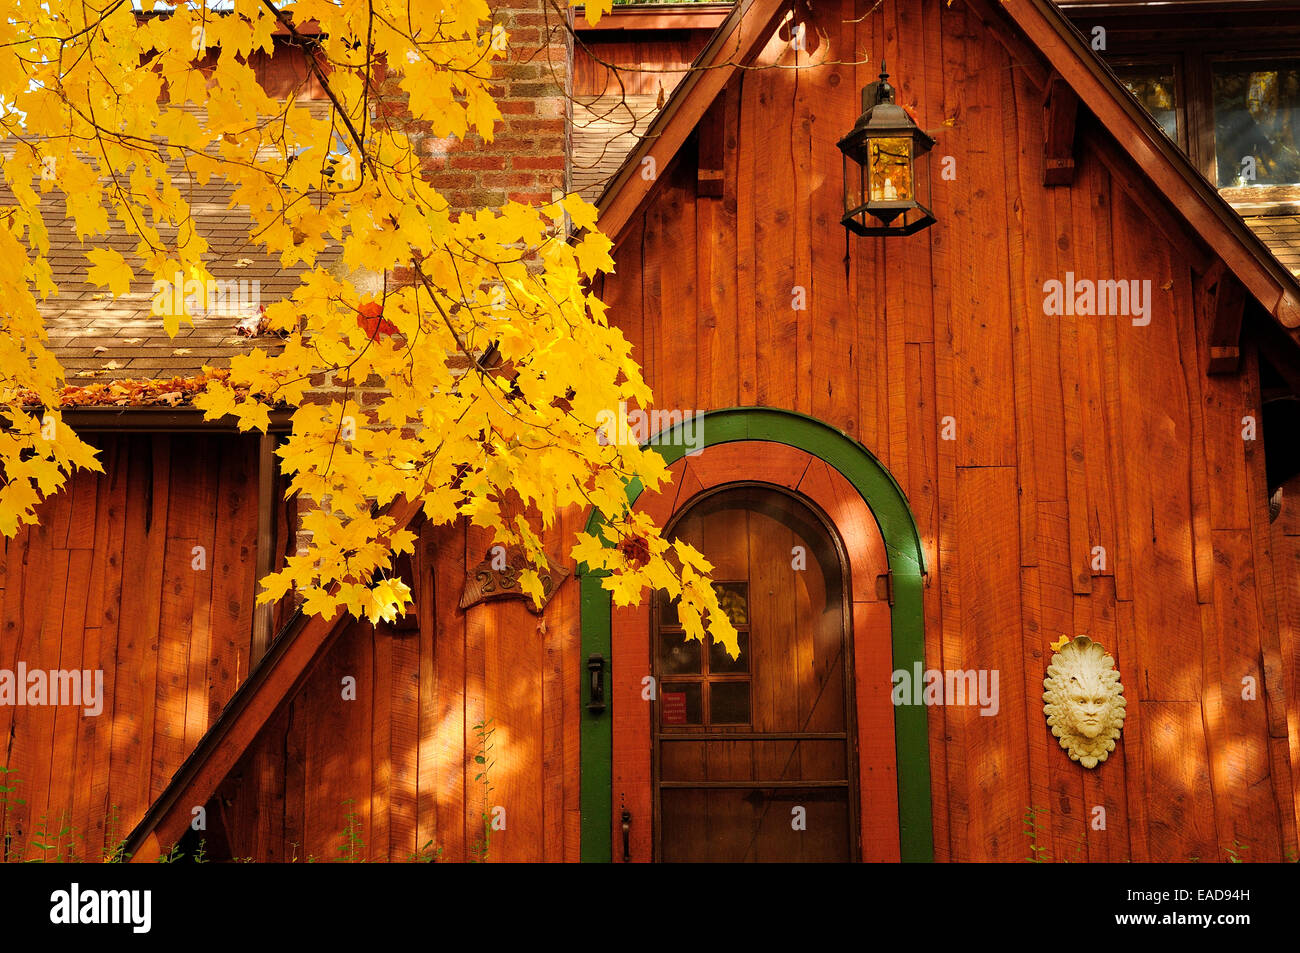 Autumn cottage with Norway maple tree in full bloom.  (Acer platanoides) - Stock Image